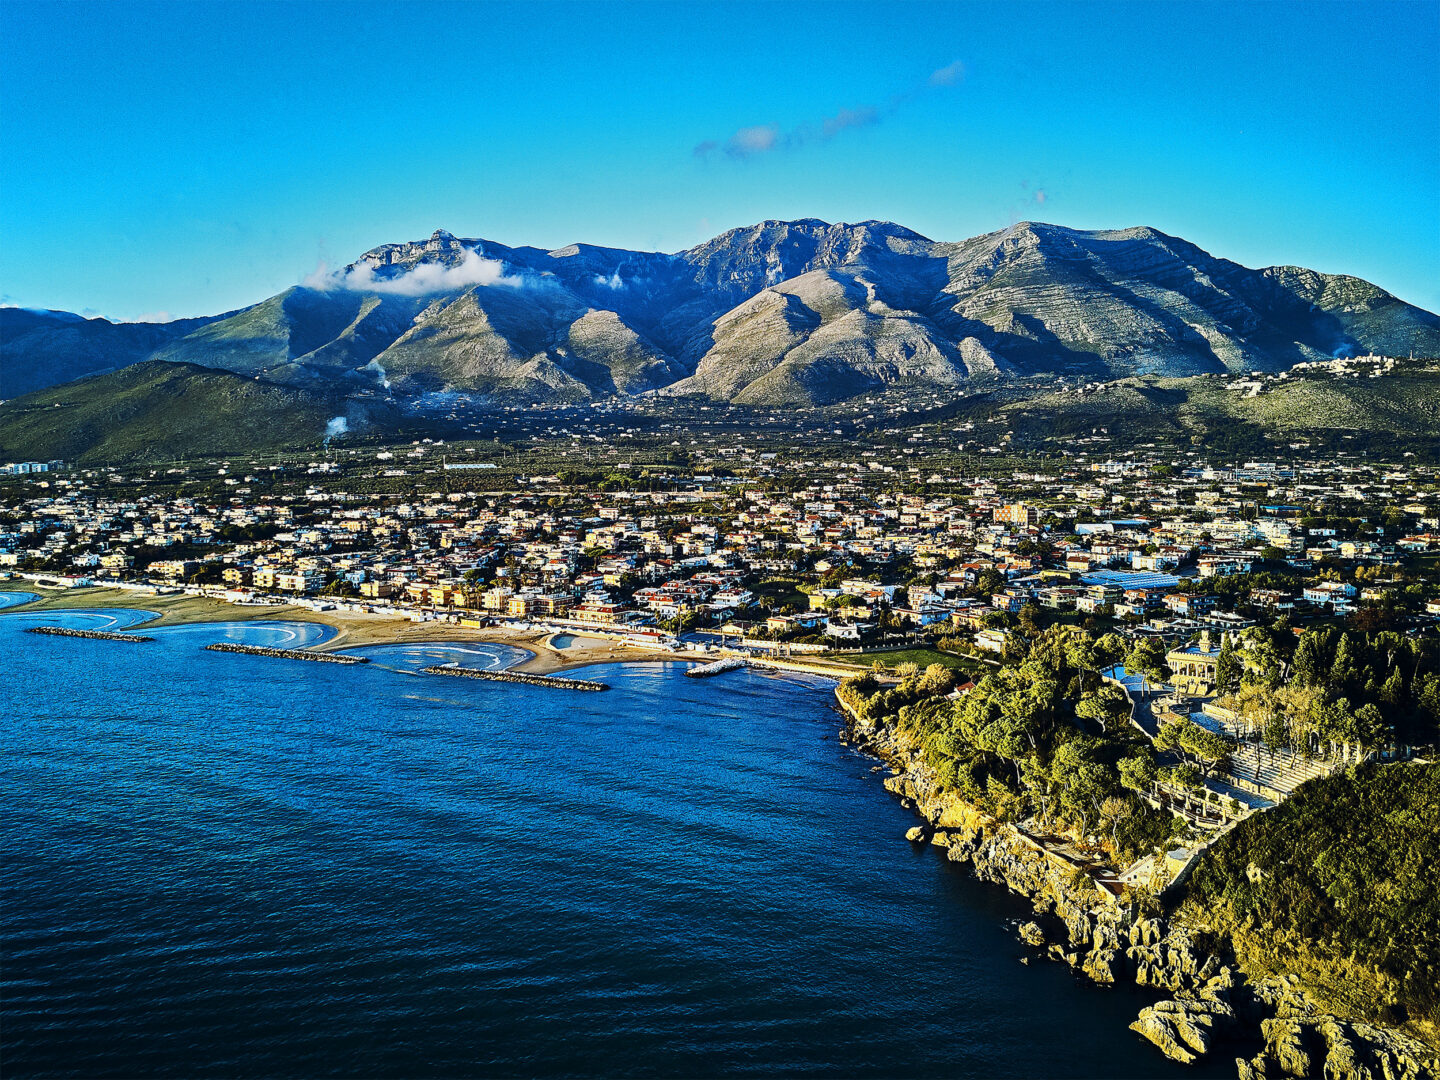 Landscape Photography Formia Drone